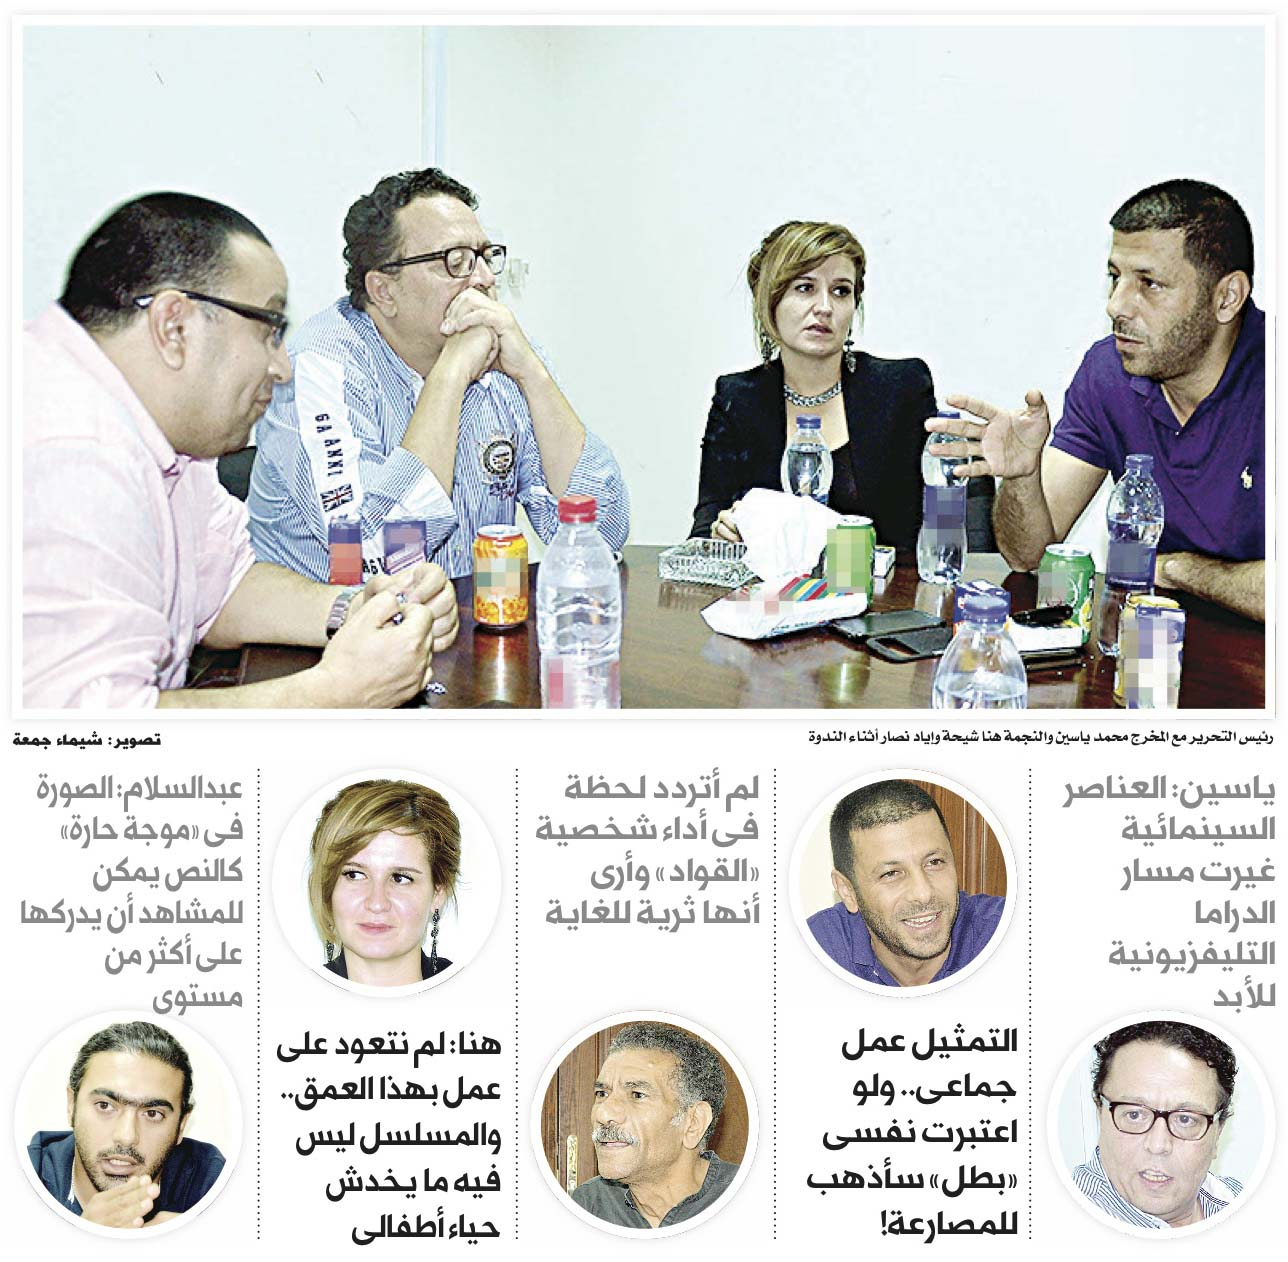 Seminar with Filmmakers of (Heatwave) in the newspaper (Al-Sbah) August 5, 2013